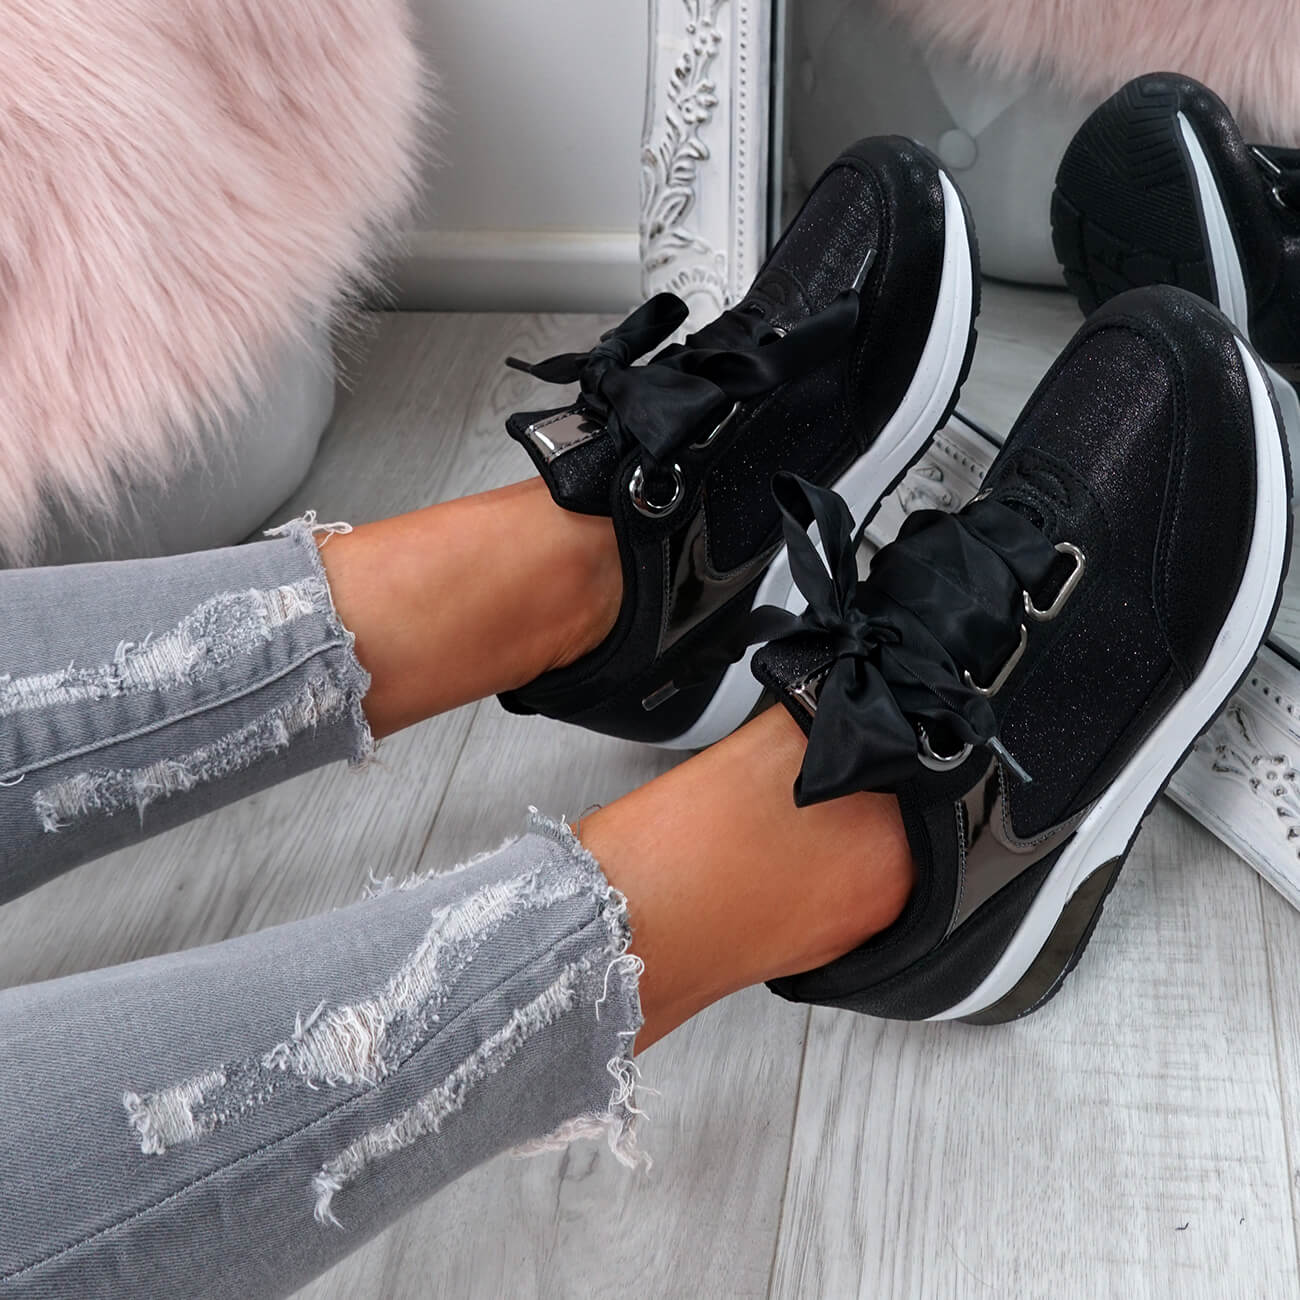 WOMENS-LADIES-RIBBON-TRAINERS-GLITTER-SPARKLE-SNEAKERS-RUNNING-FASHION-SHOES thumbnail 9